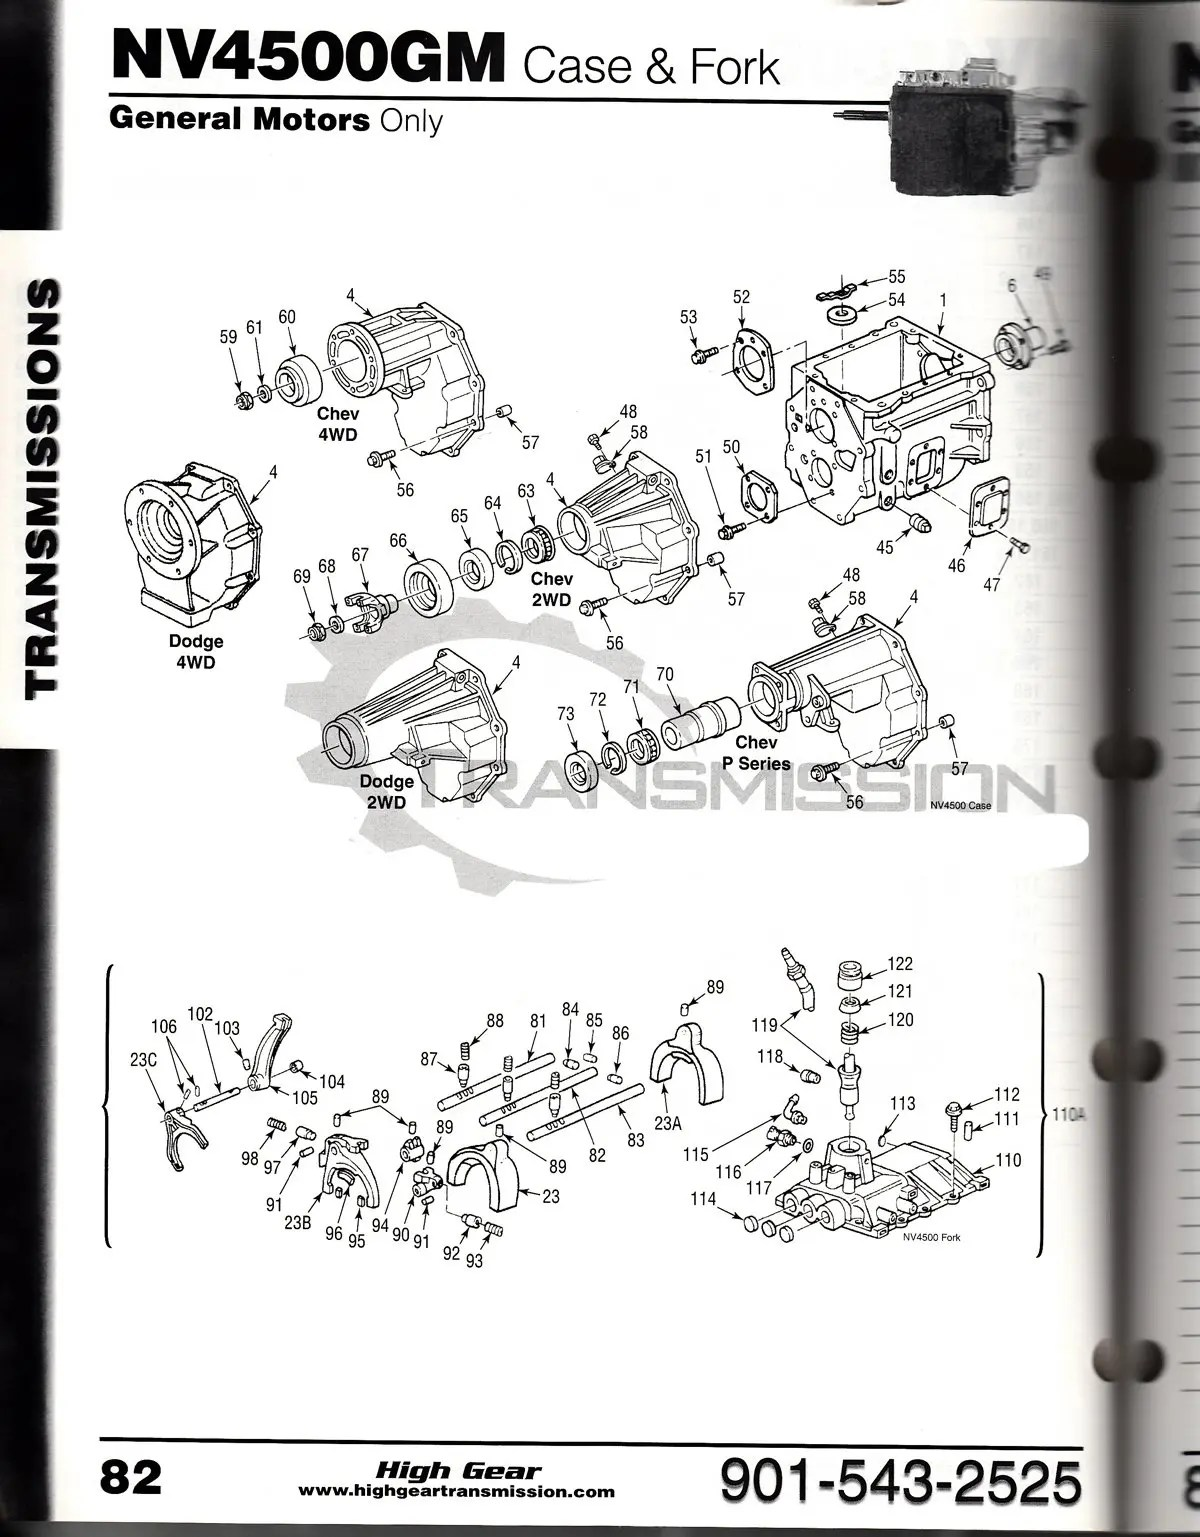 2006 Chevy Wiring Diagram Nv 4500 Diagrams Nv4500 Chevy And Dodge Tranmission Parts